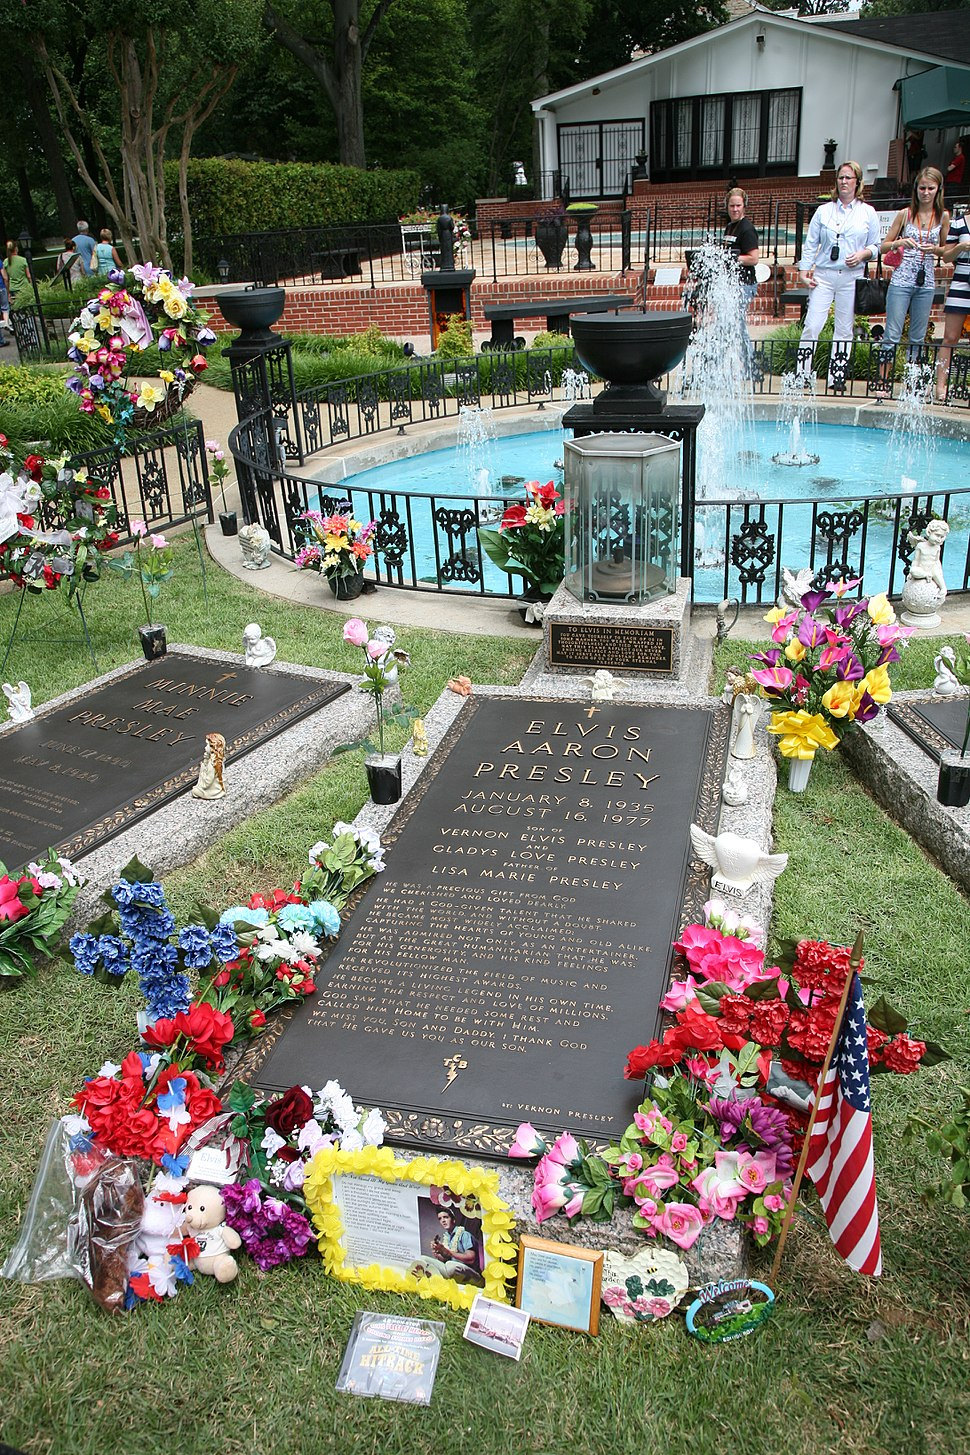 """A long, ground-level gravestone reads """"Elvis Aaron Presley"""", followed by the singer's dates, the names of his parents and daughter, and several paragraphs of smaller text. It is surrounded by flowers, a small American flag, and other offerings. Similar grave markers are visible on either side. In the background is a small round pool, with a low decorative metal fence and several fountains."""